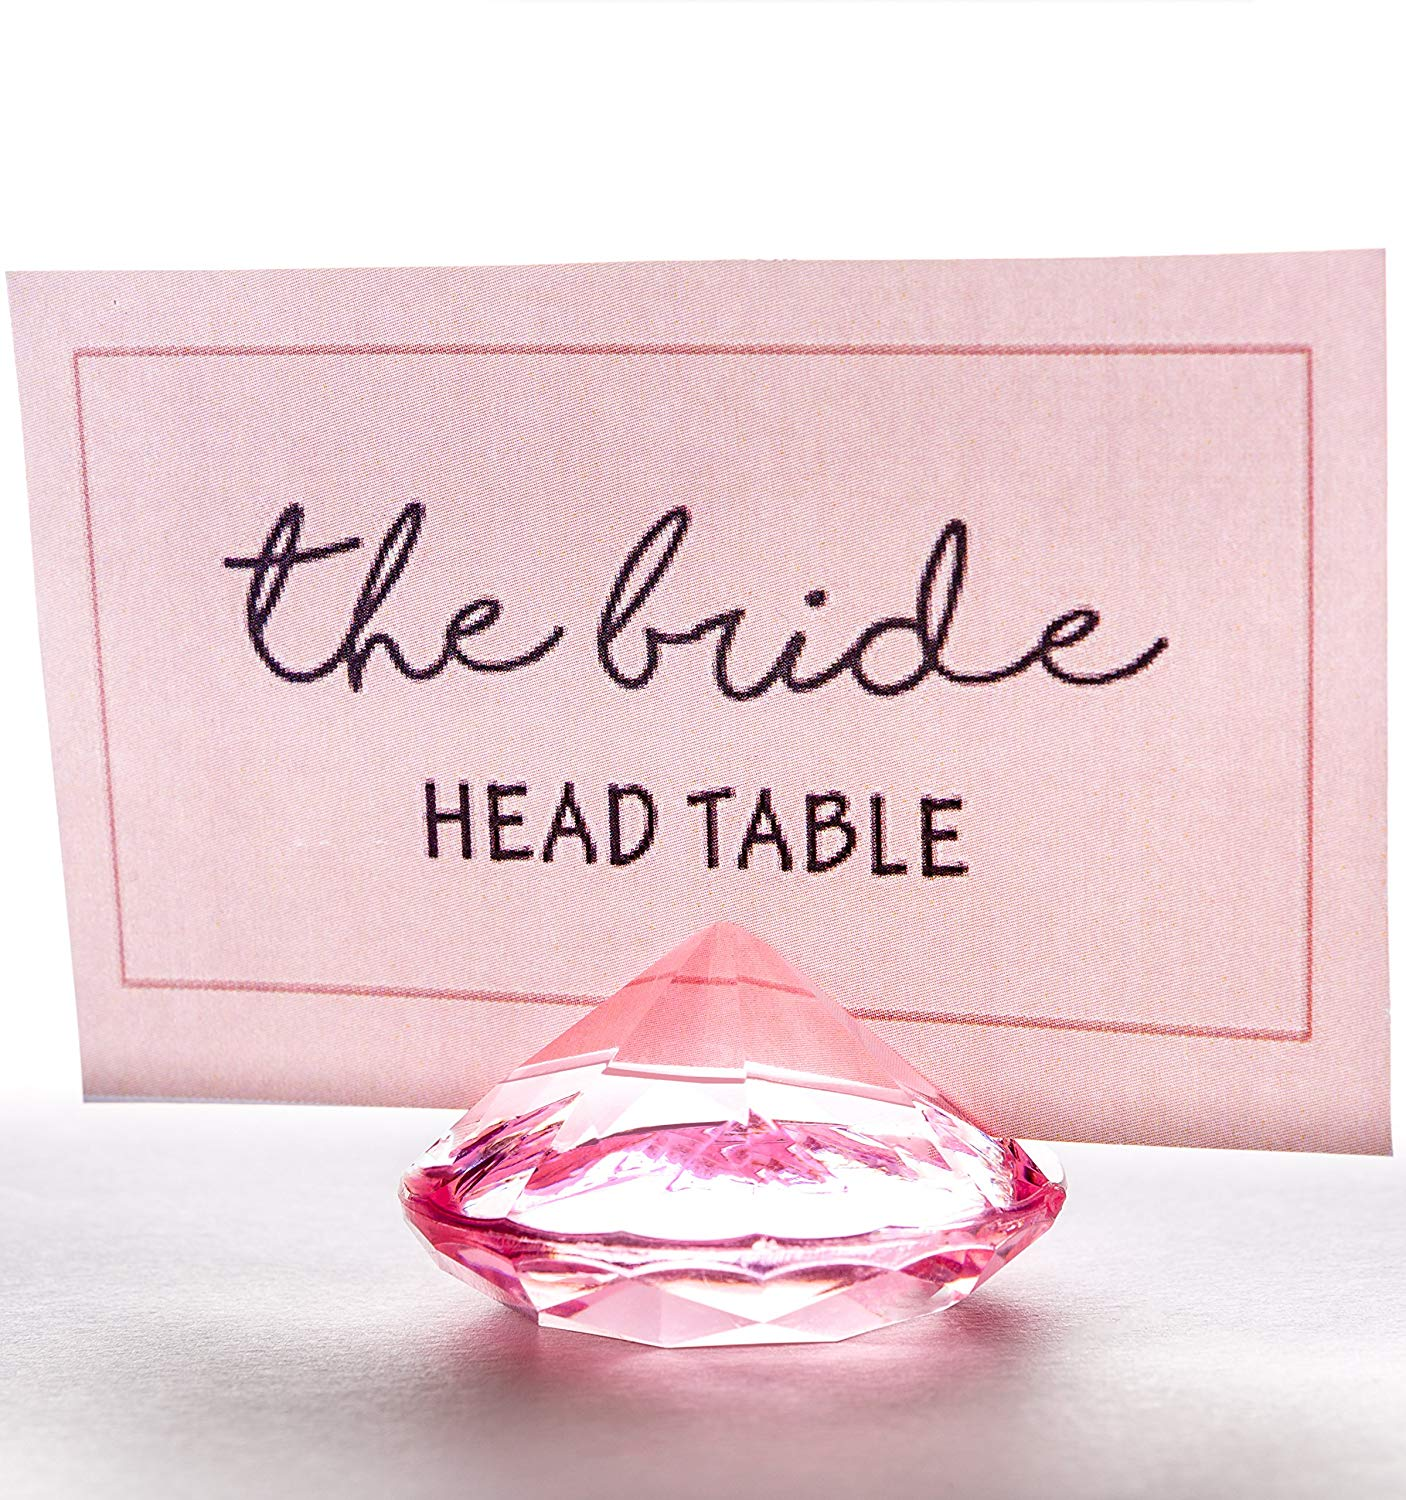 PINK Diamond Table Number & Place Card Holders, Set of 20. Sturdy Acrylic Name Card Holders for Wedding & Party Table Decorations